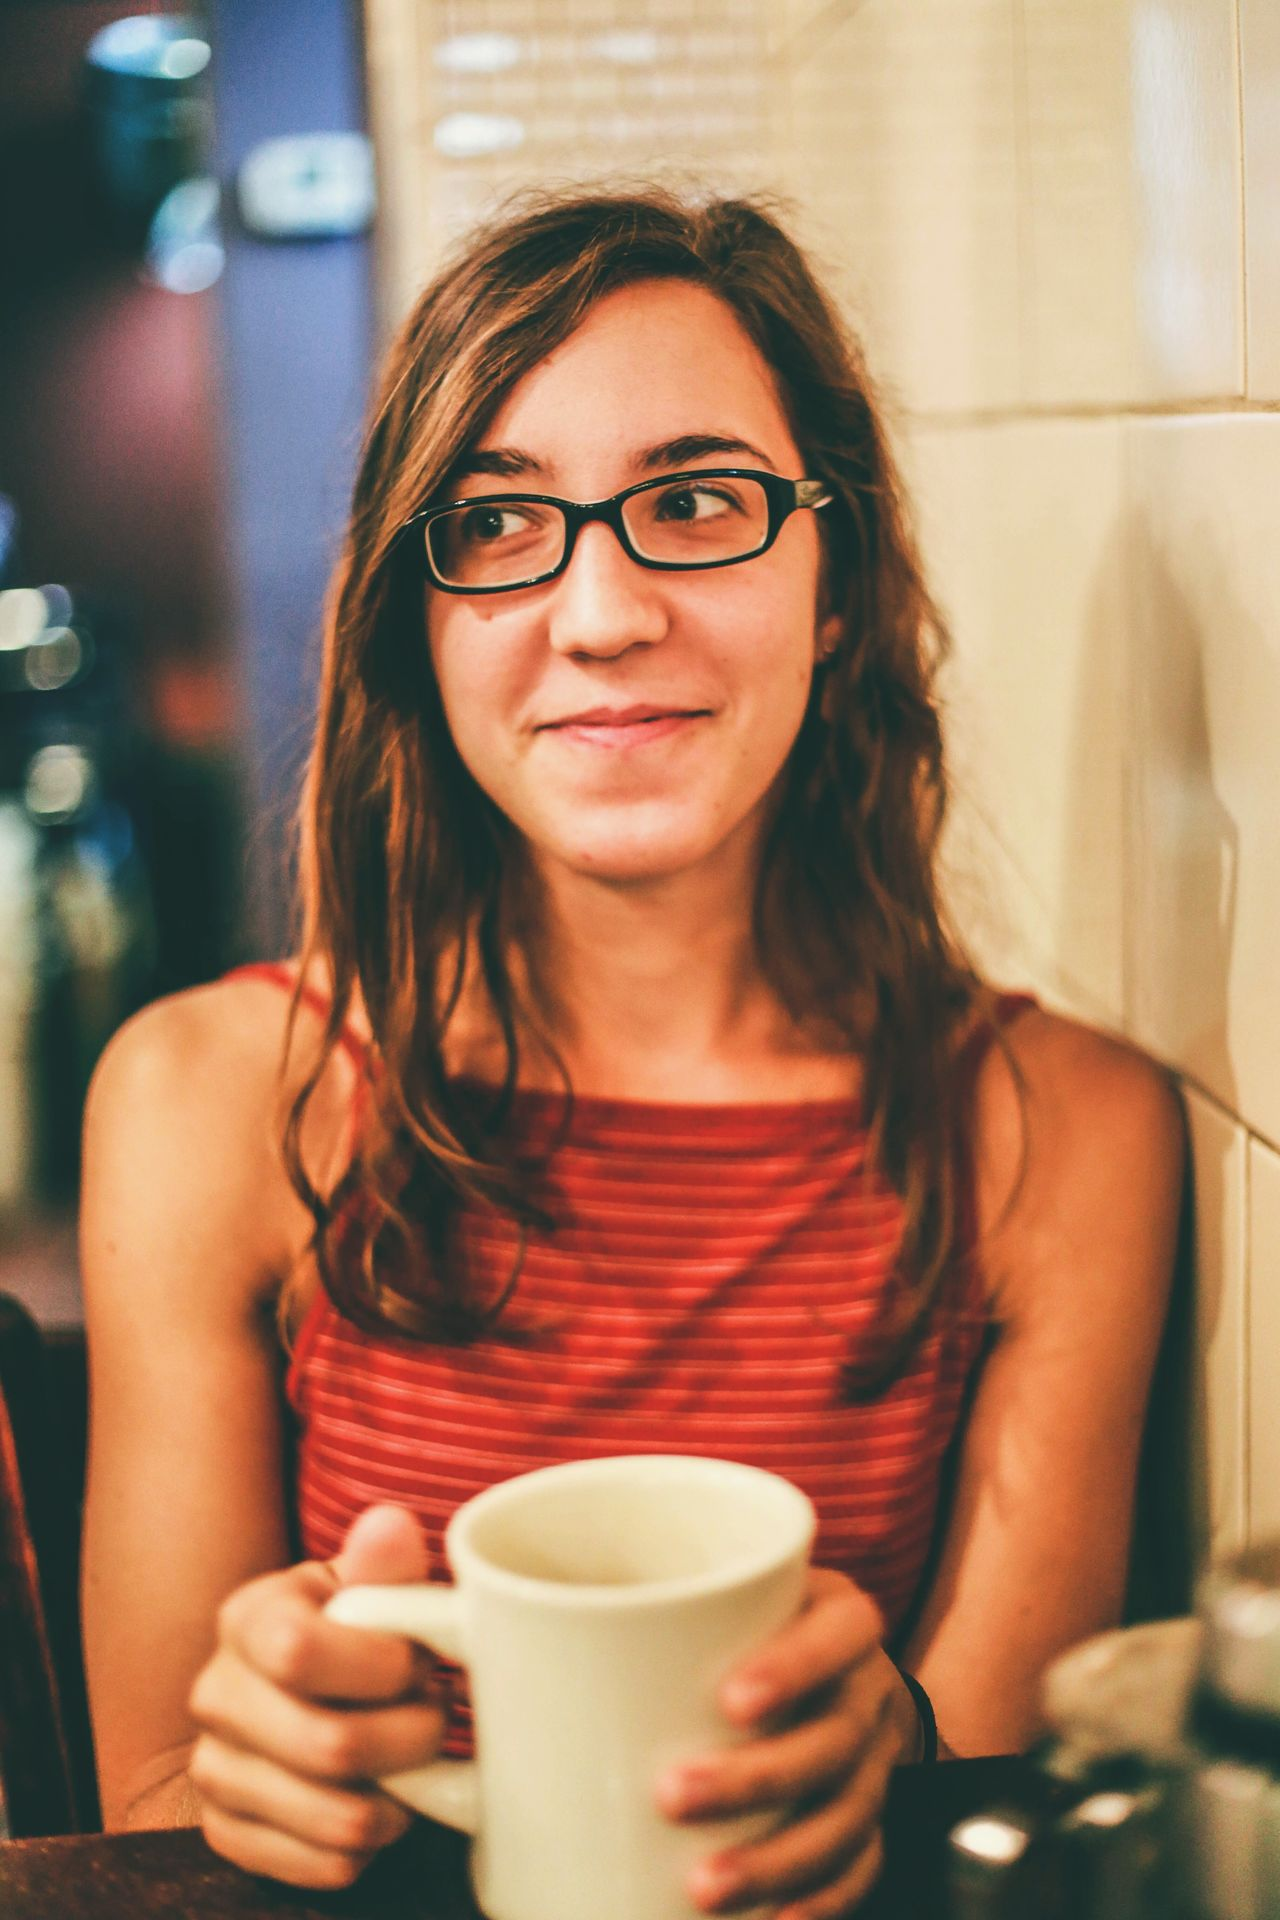 Coffee And Sweets the sweet girl and her coffee Austin Snapshots Of Life Portrait The Moment - 2015 EyeEm Awards The Portraitist - 2015 EyeEm Awards